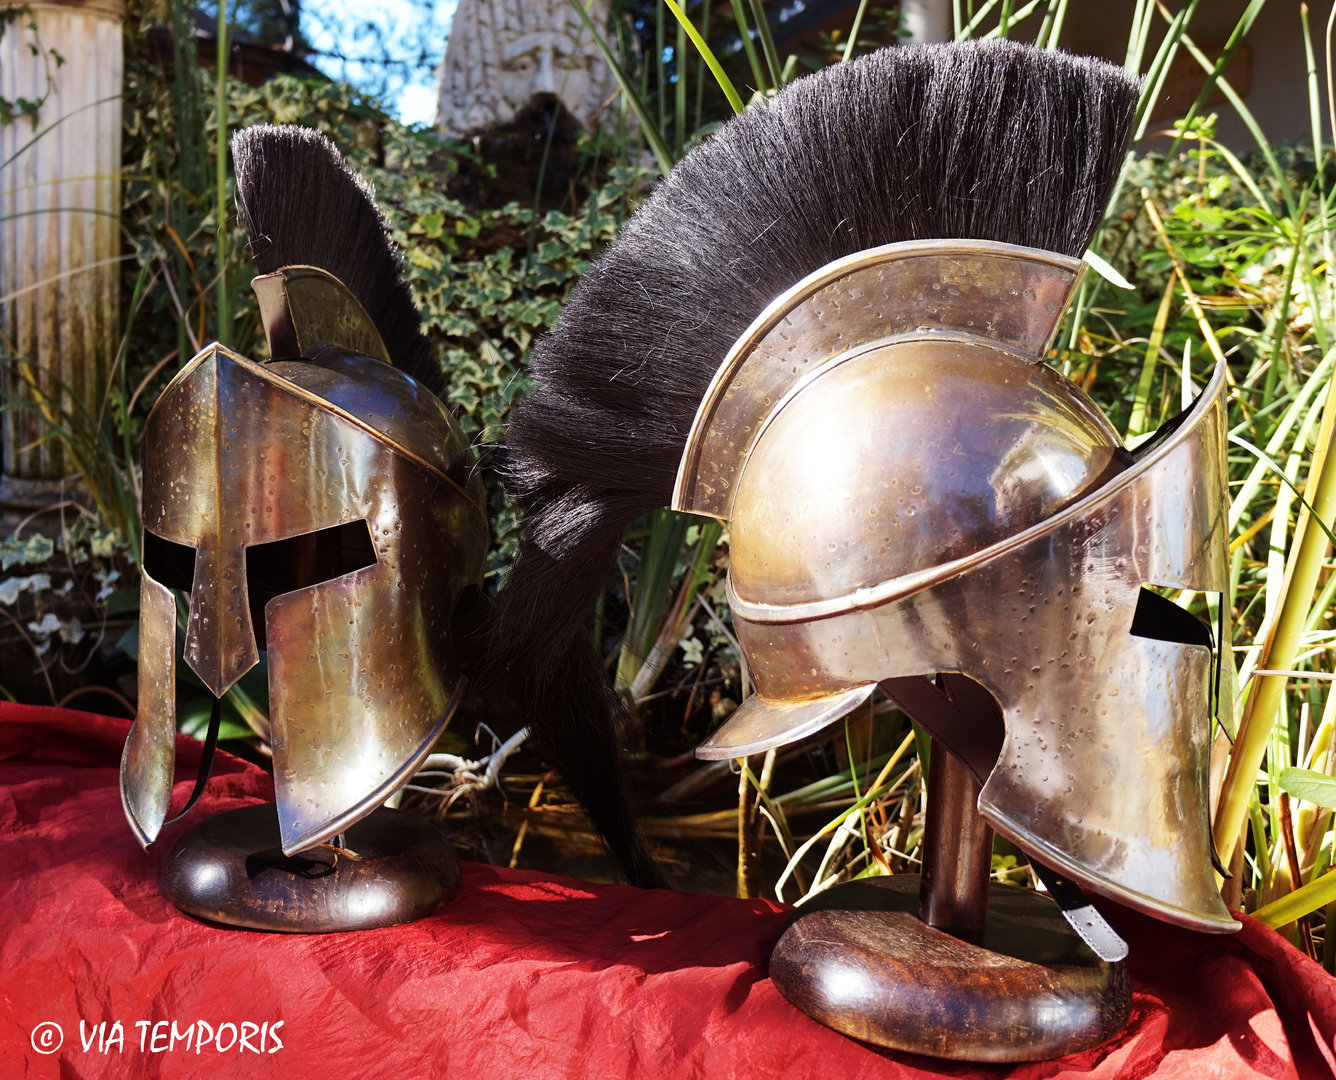 SPARTAN HEMLMET MOVIE 300 WITH BLACK HORSEHAIR CREST